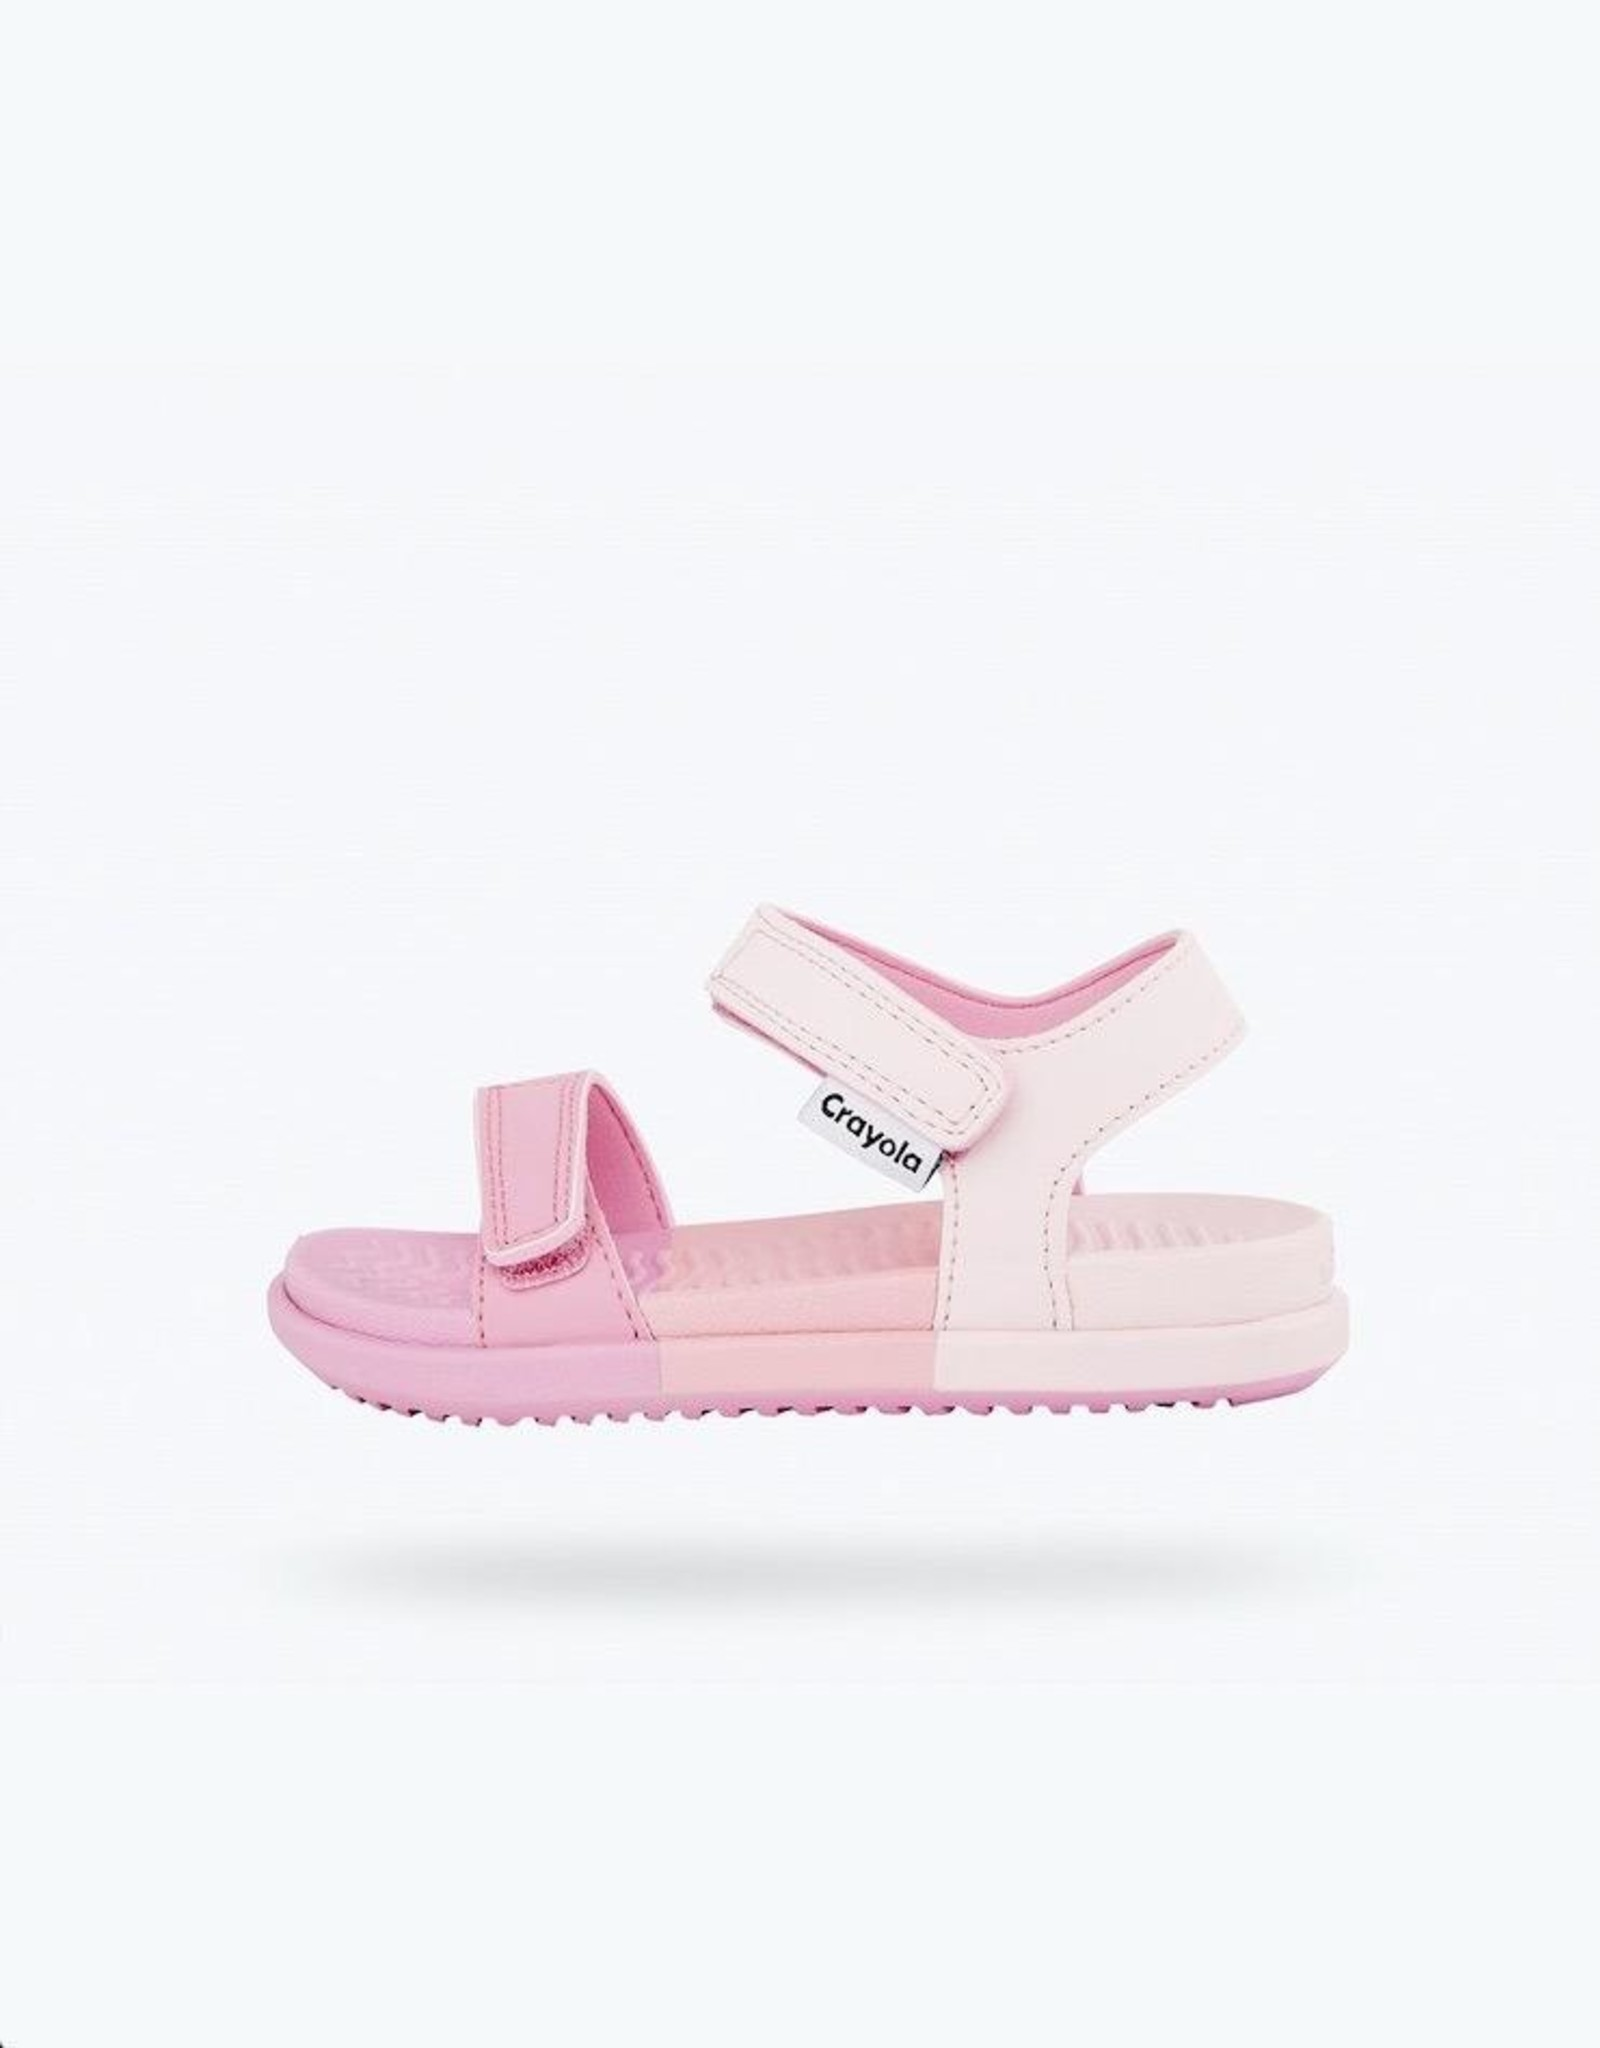 Native Shoes Charley Crayola® Block Child Awesome Pink/ Block Print